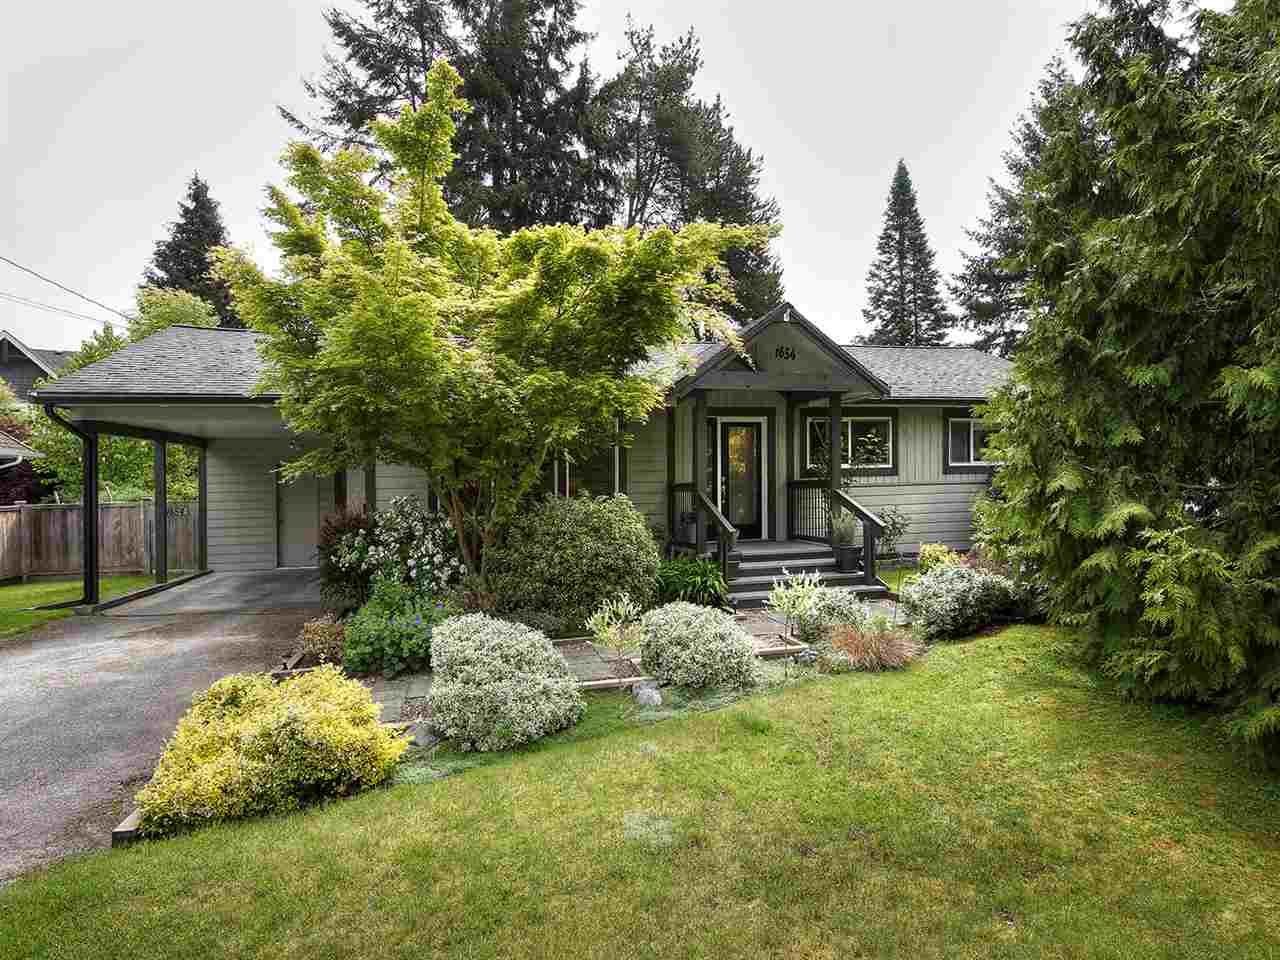 "Main Photo: 1654 58A Street in Delta: Beach Grove House for sale in ""BEACH GROVE"" (Tsawwassen)  : MLS(r) # R2170036"